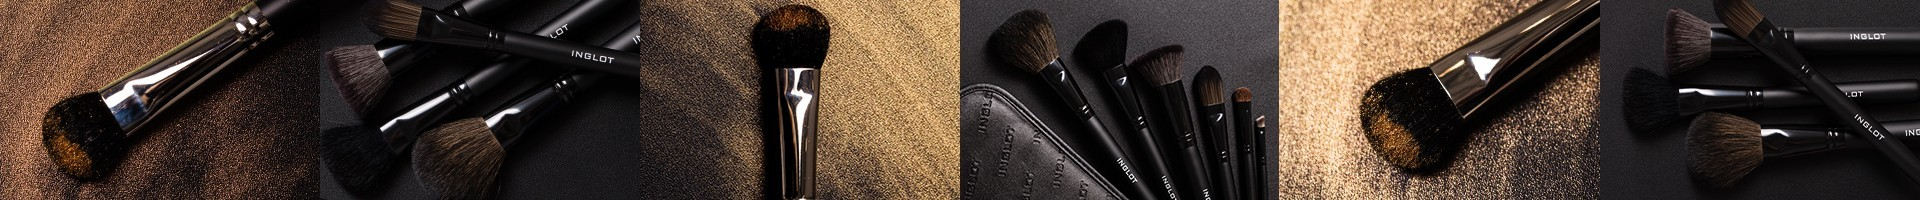 Pigments Brush